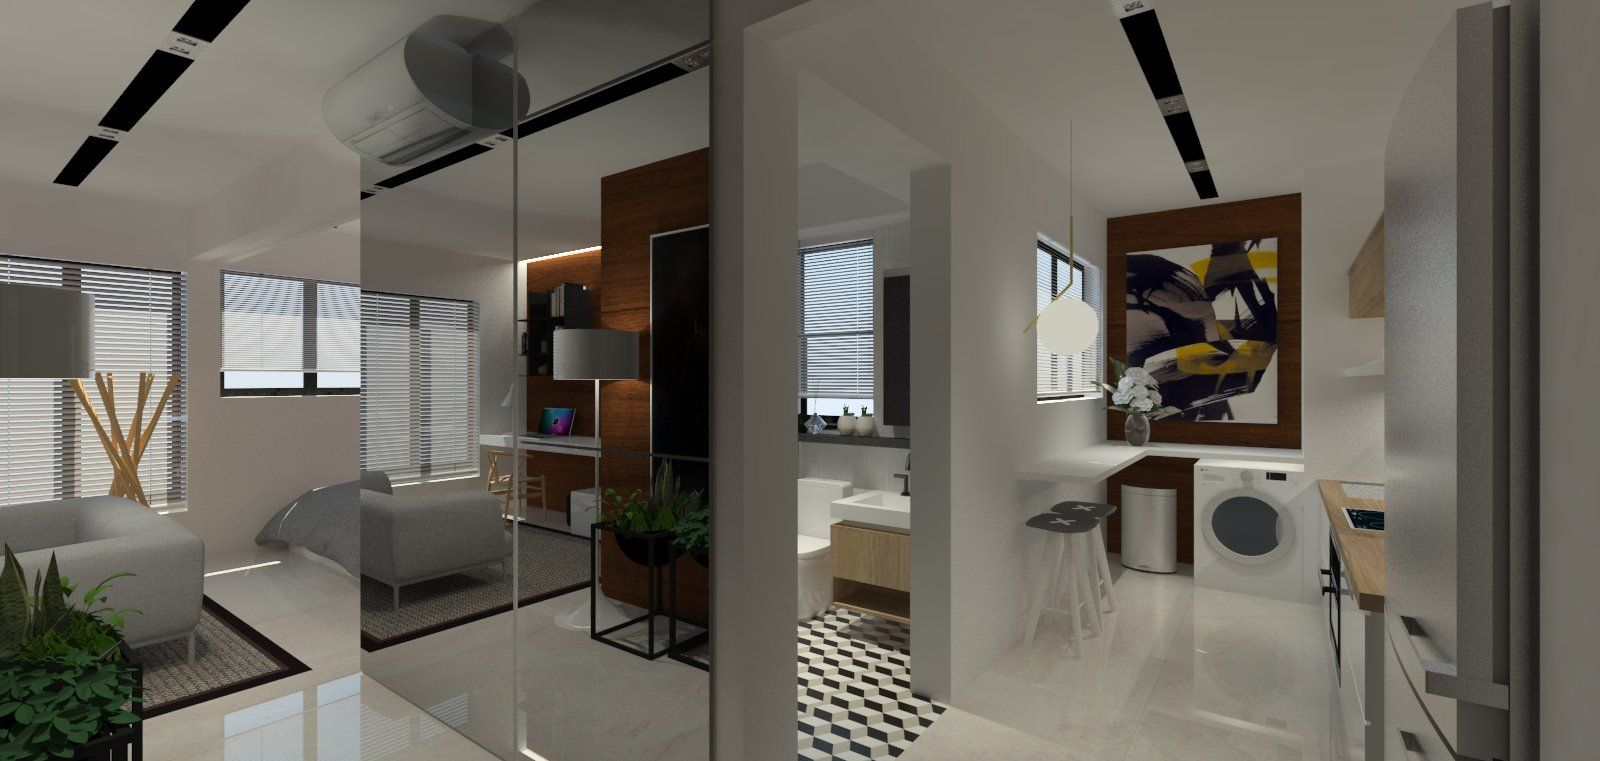 Hdb 2 room bto for singles 47sqm apartment interior for Apartment design singapore